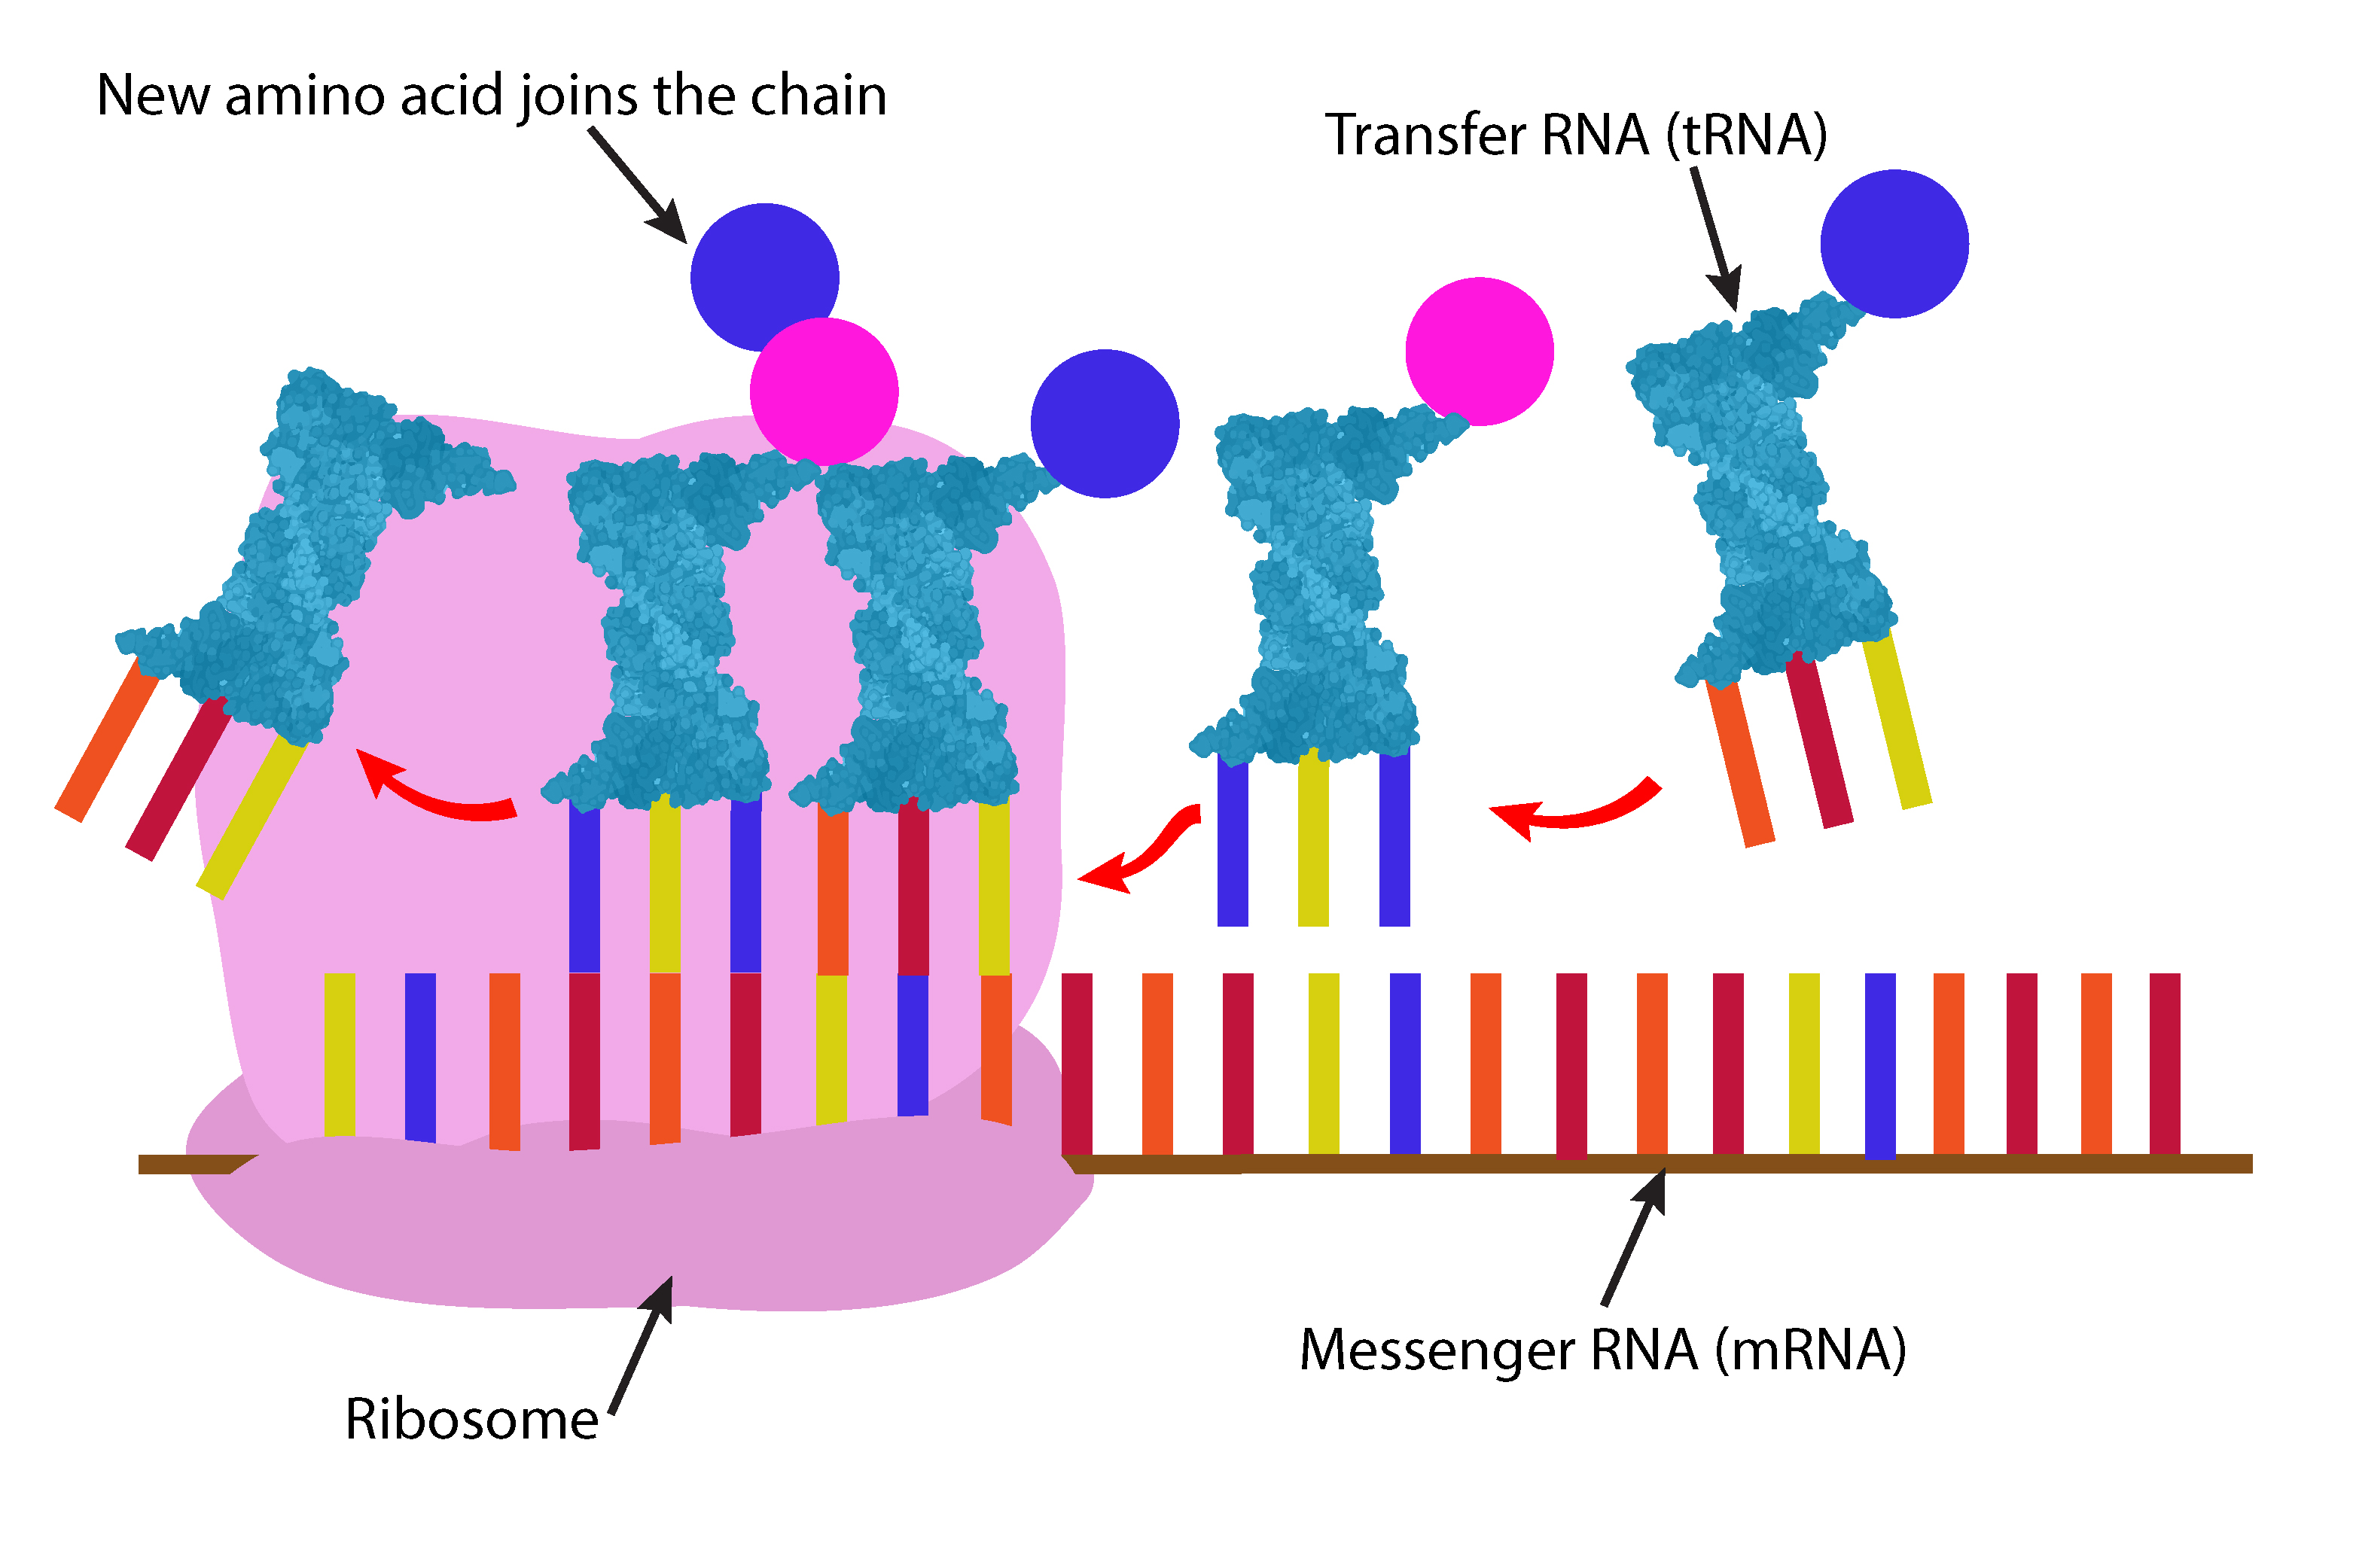 Amino acid chains form as the ribosome moves along the mRNA attaching tRNA as it goes